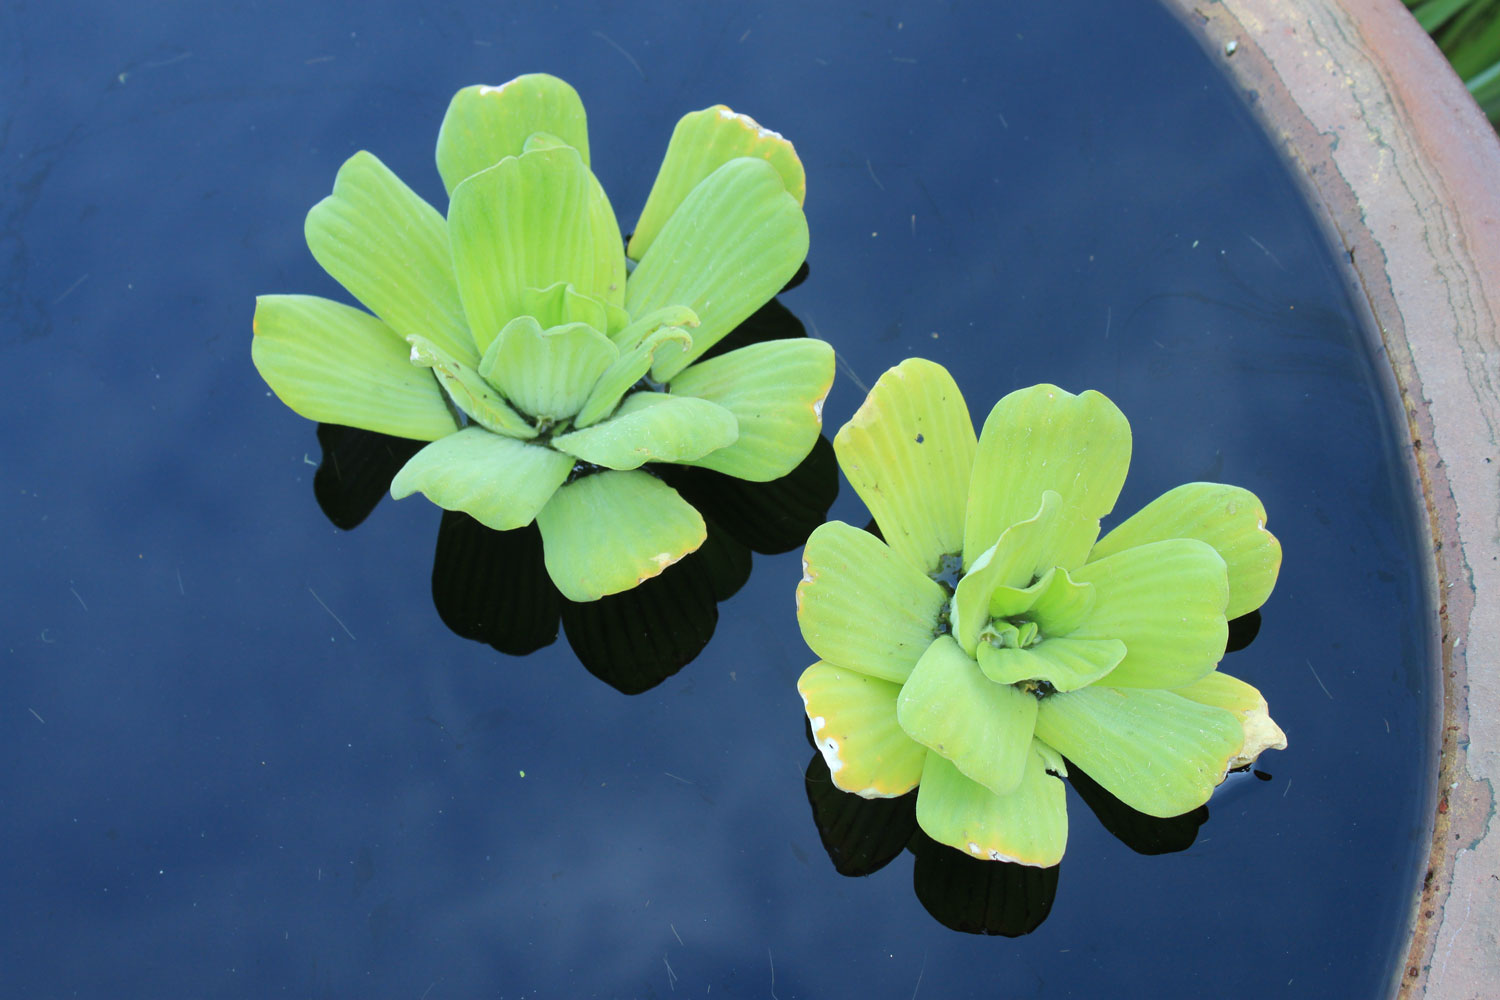 Water lettuce live pond plants for Floating flowers in water